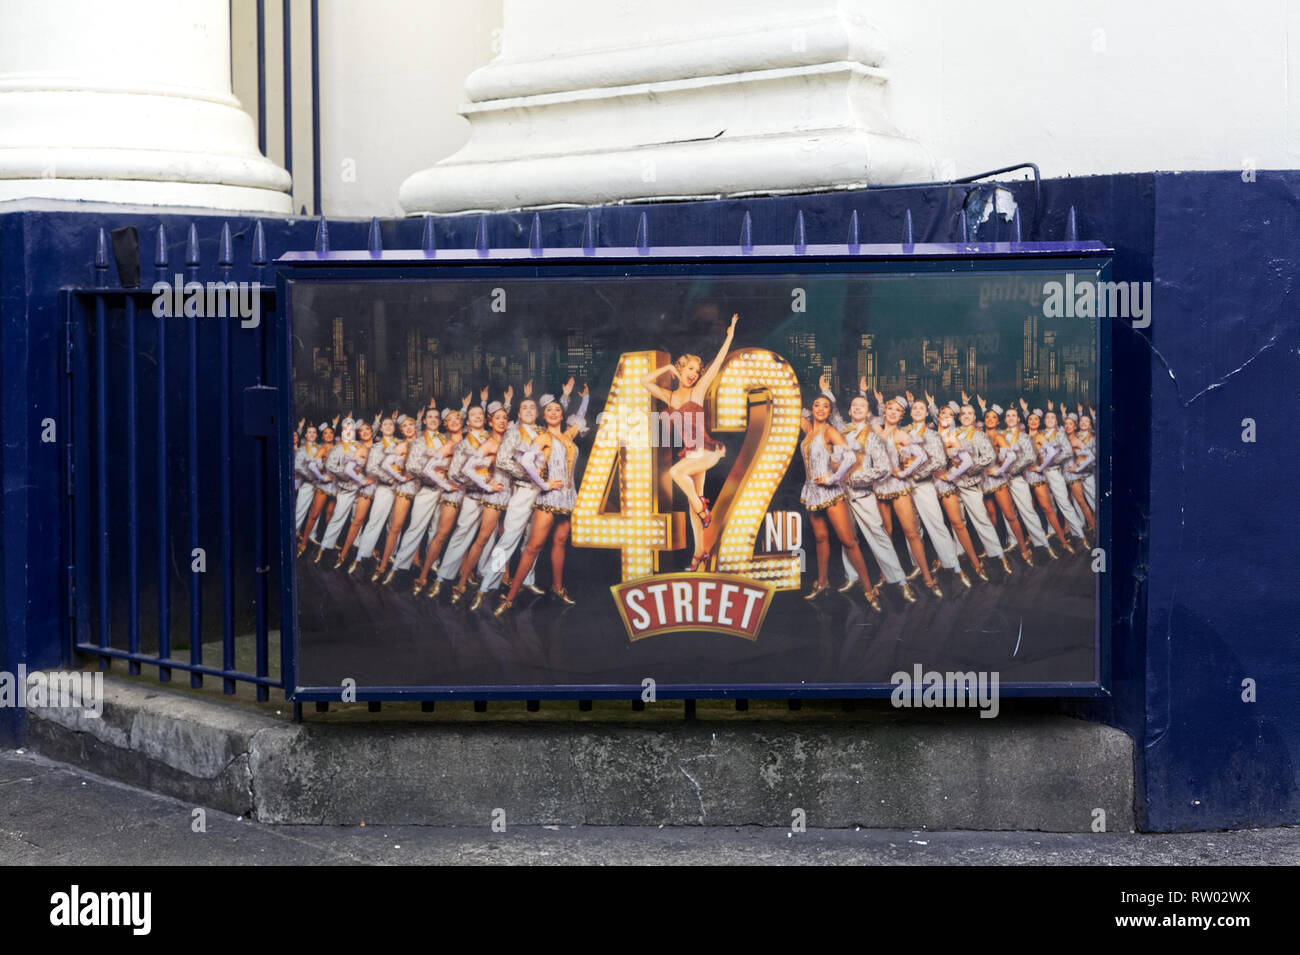 42nd street poster. - Stock Image